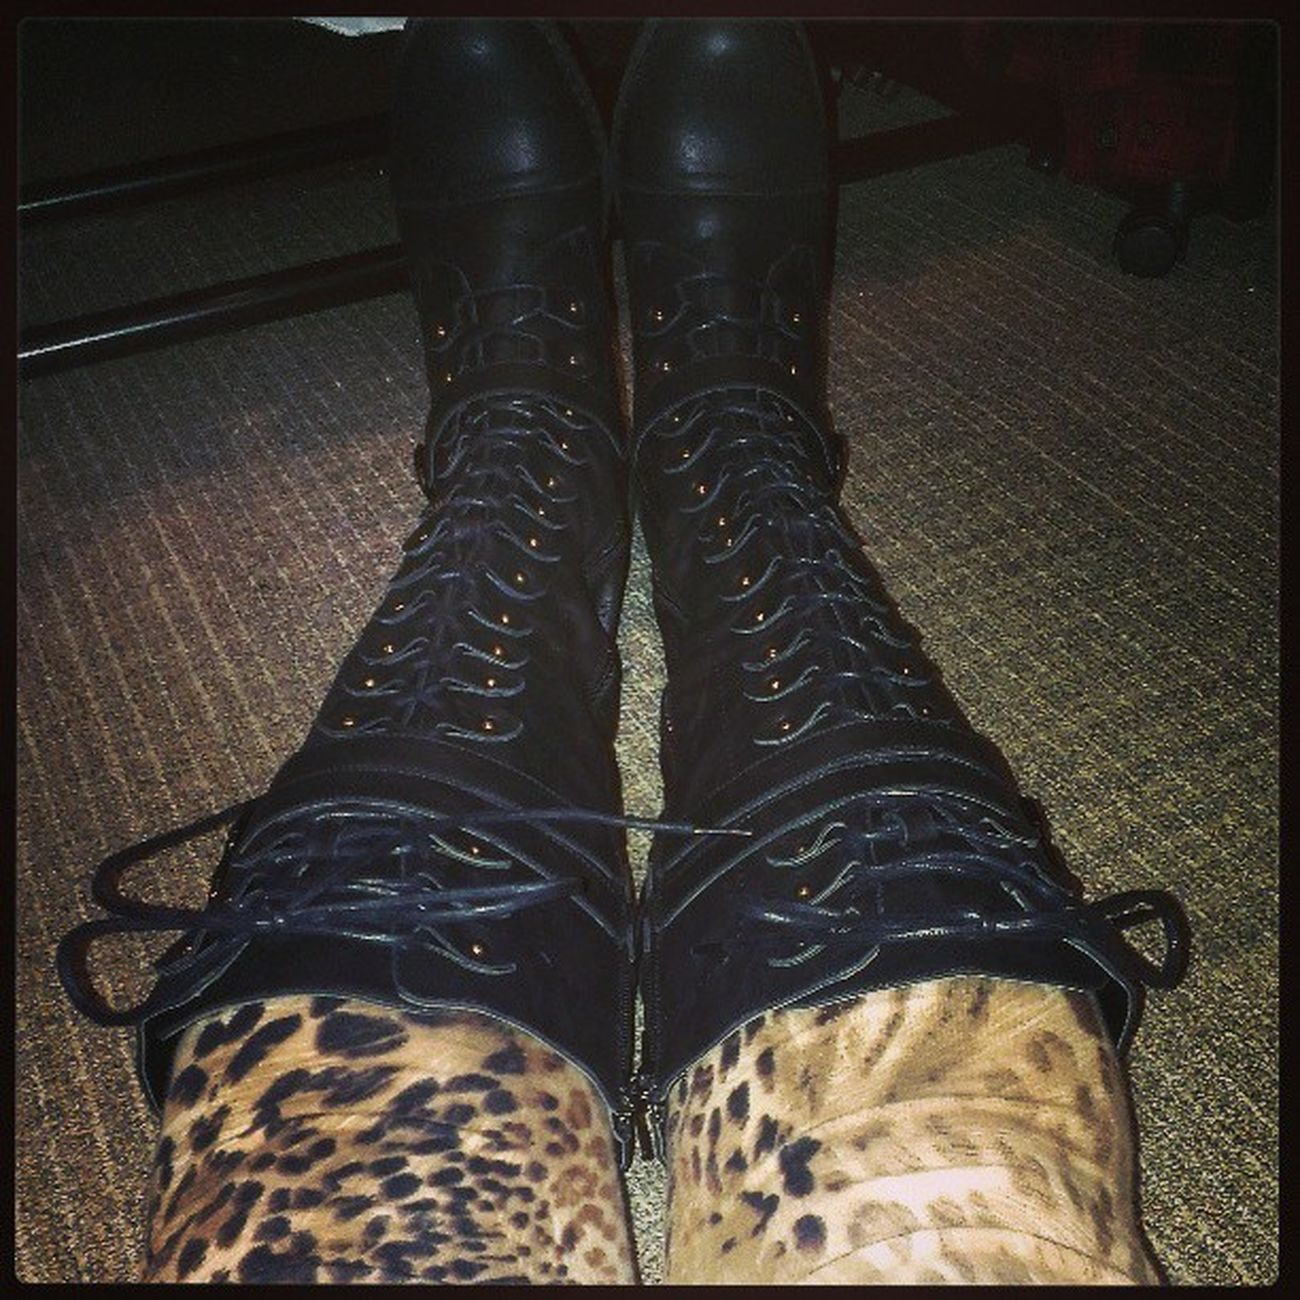 Gojane has some kickass boots. They ended up fitting too. Getting hubs out of the house tonight. Boots Addiction